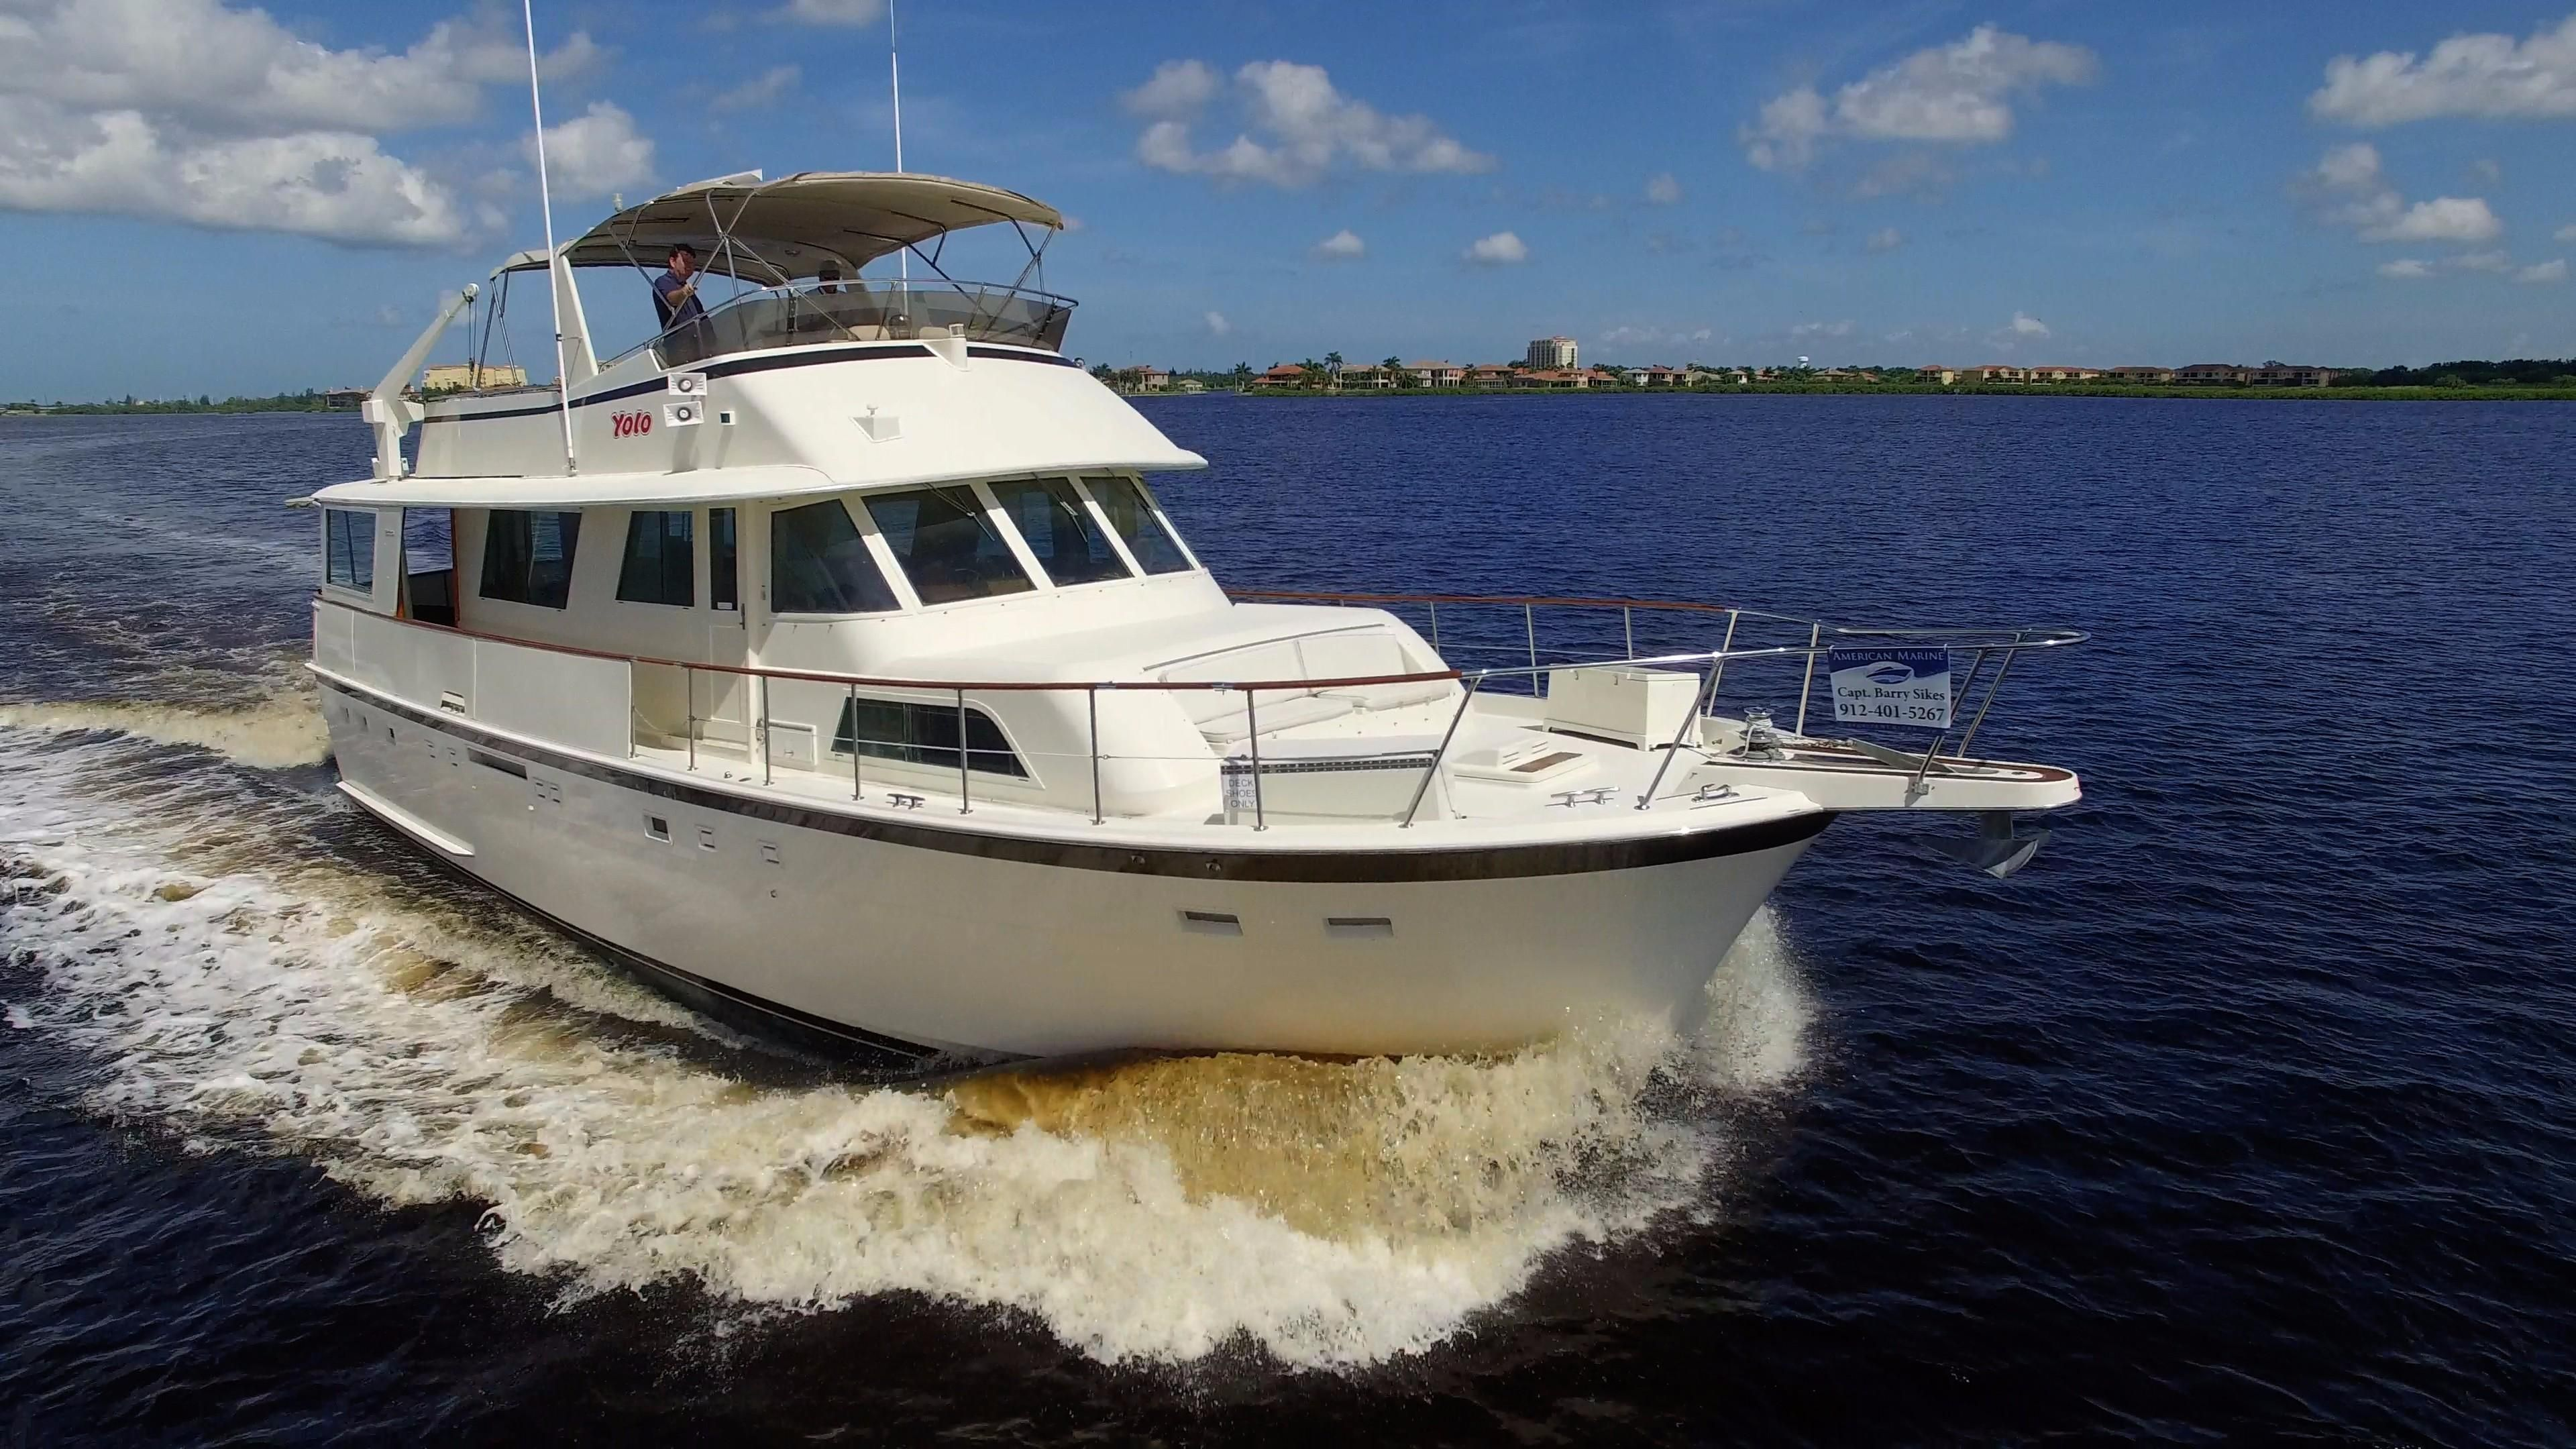 1985 hatteras 58 motor yacht power boat for sale www